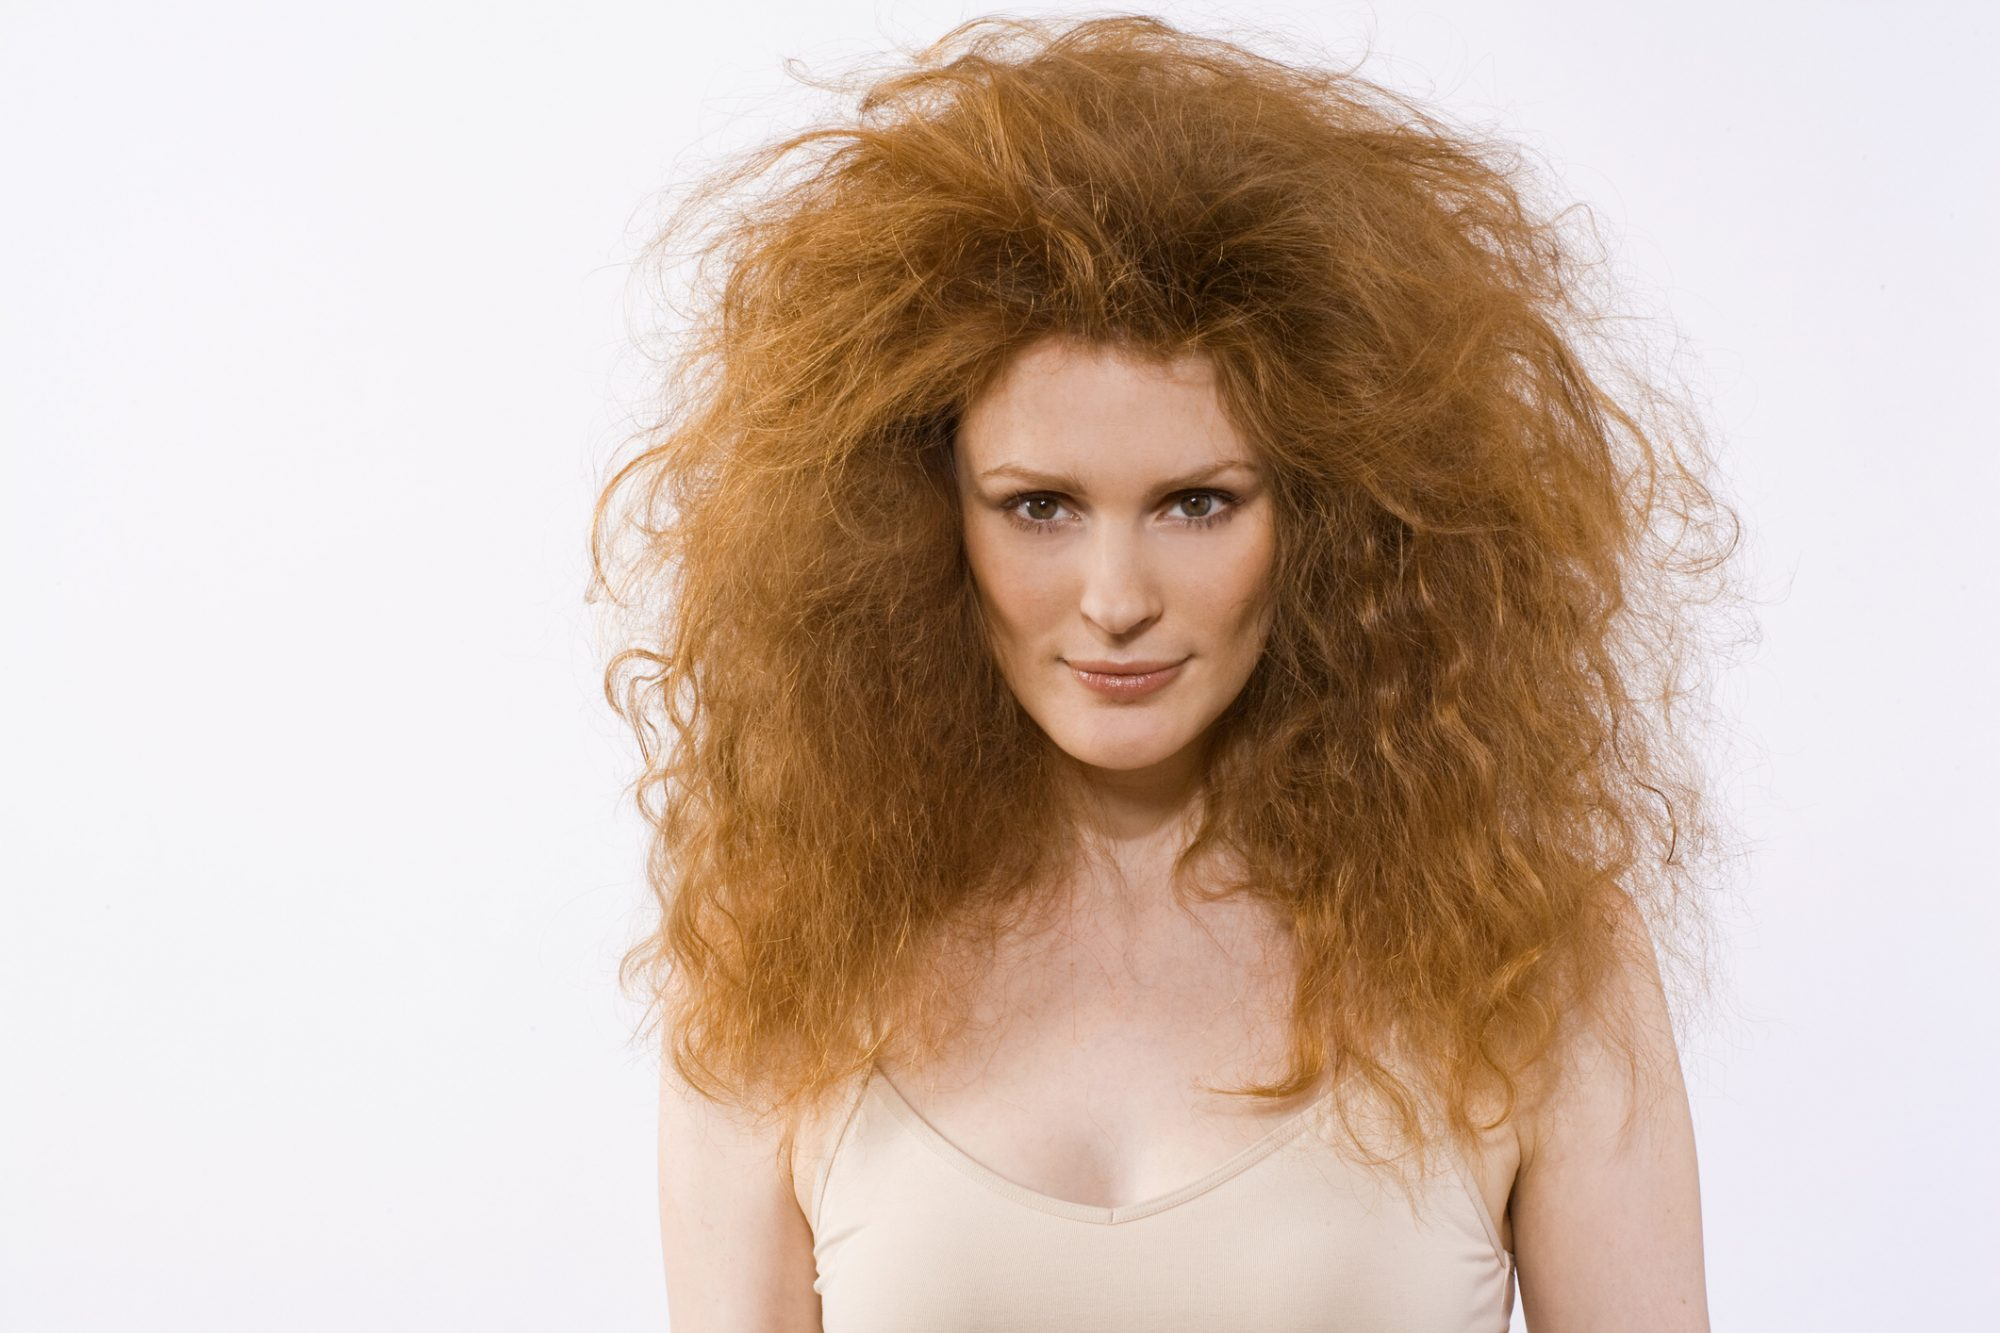 Woman with Very Big Frizzy Hair